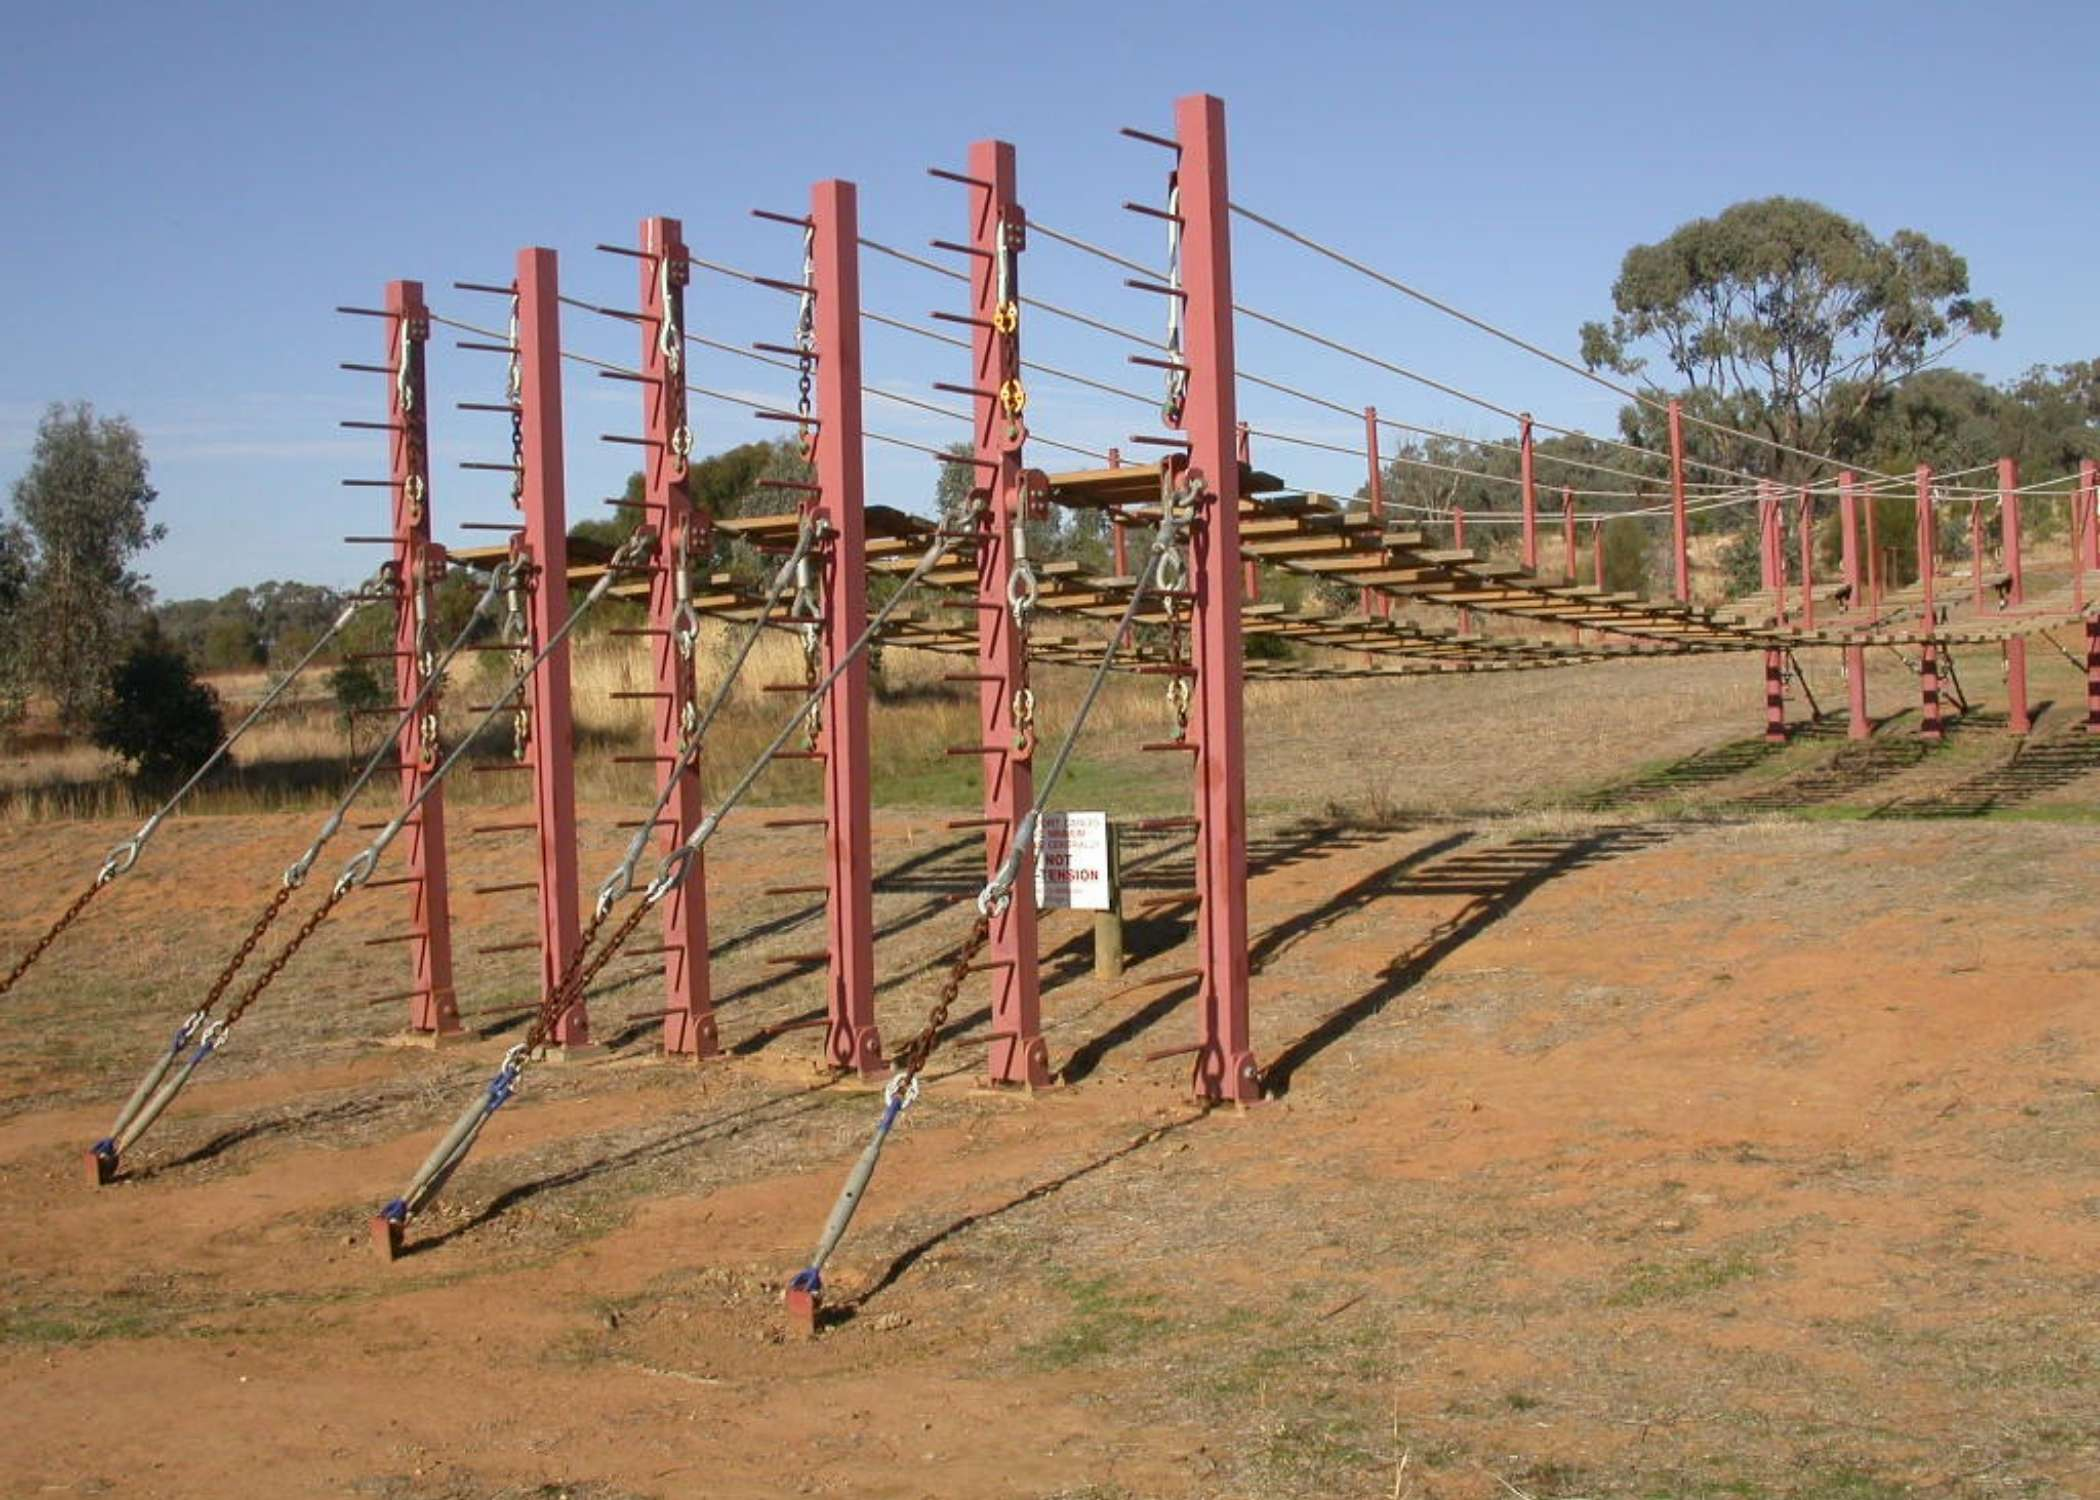 obstacle course equipment, outdoor training